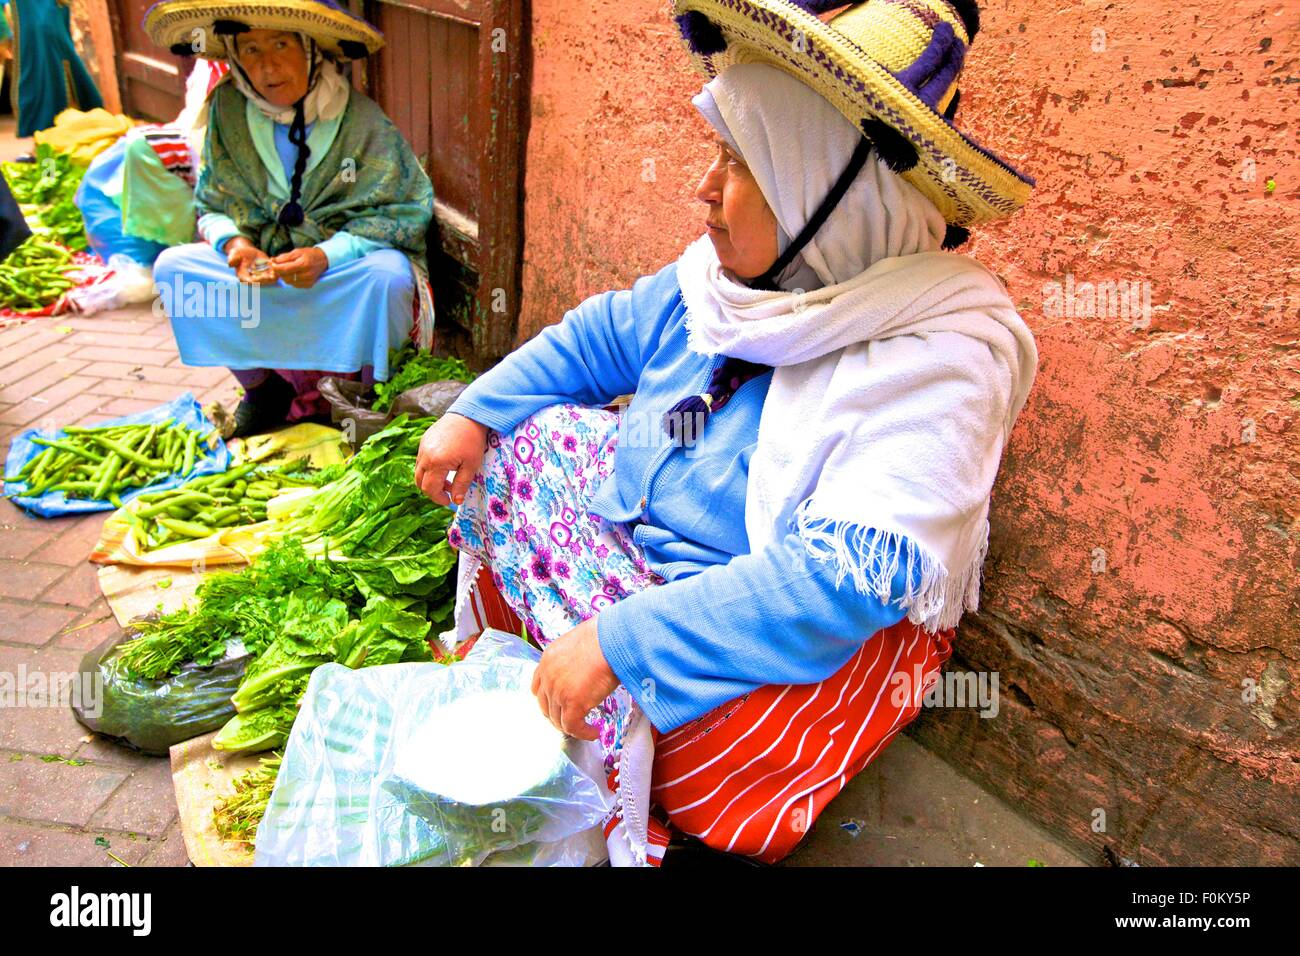 Berber Vendors at Market, Tangier, Morocco, North Africa - Stock Image